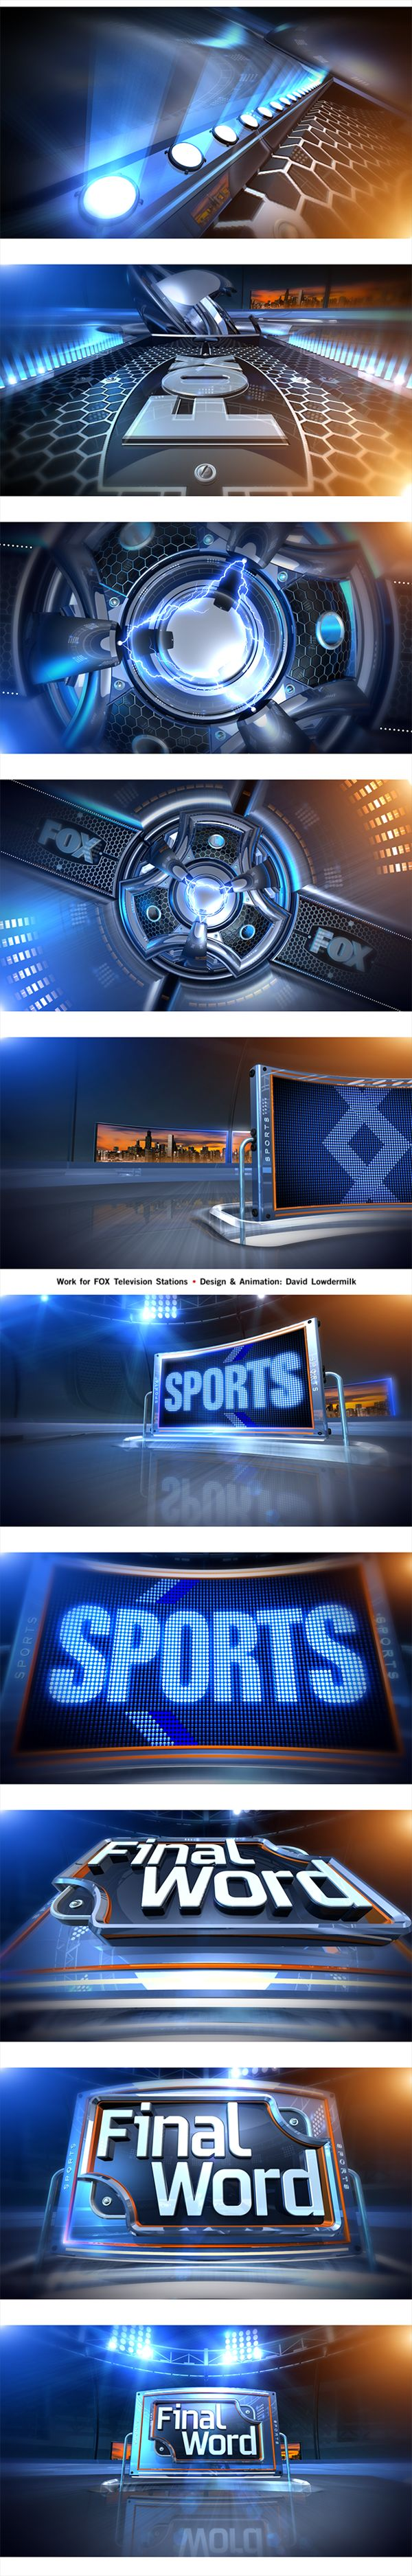 "Sports Open - ""FINAL WORD"" by Milkman Dave, via Behance"